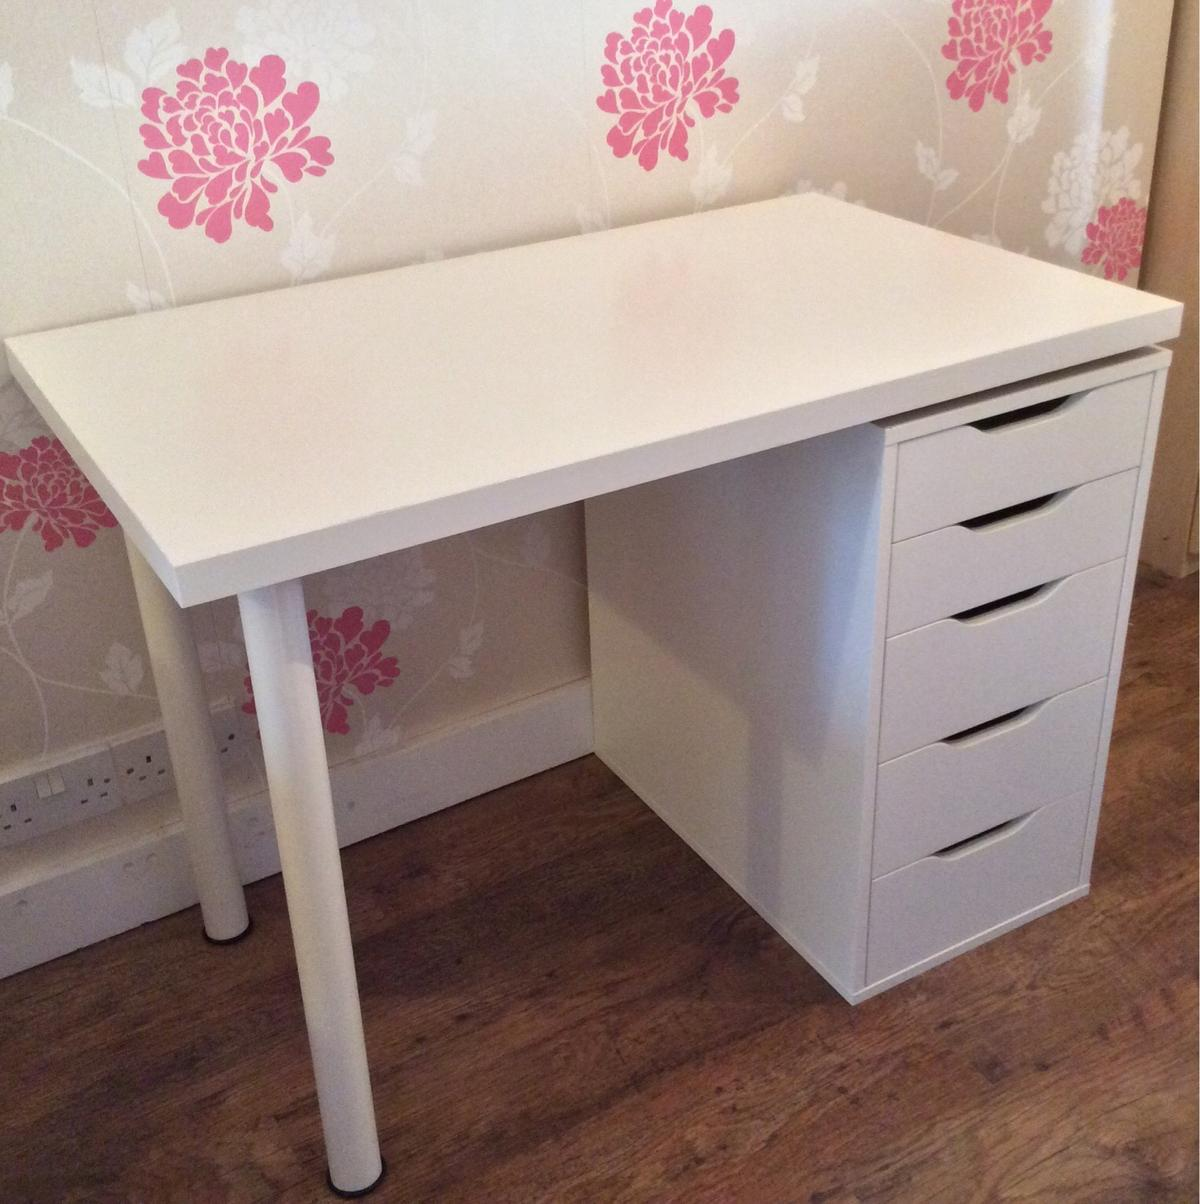 Ikea White Desk, Alex Drawers & Gregor Chair in Stockton for £75 00